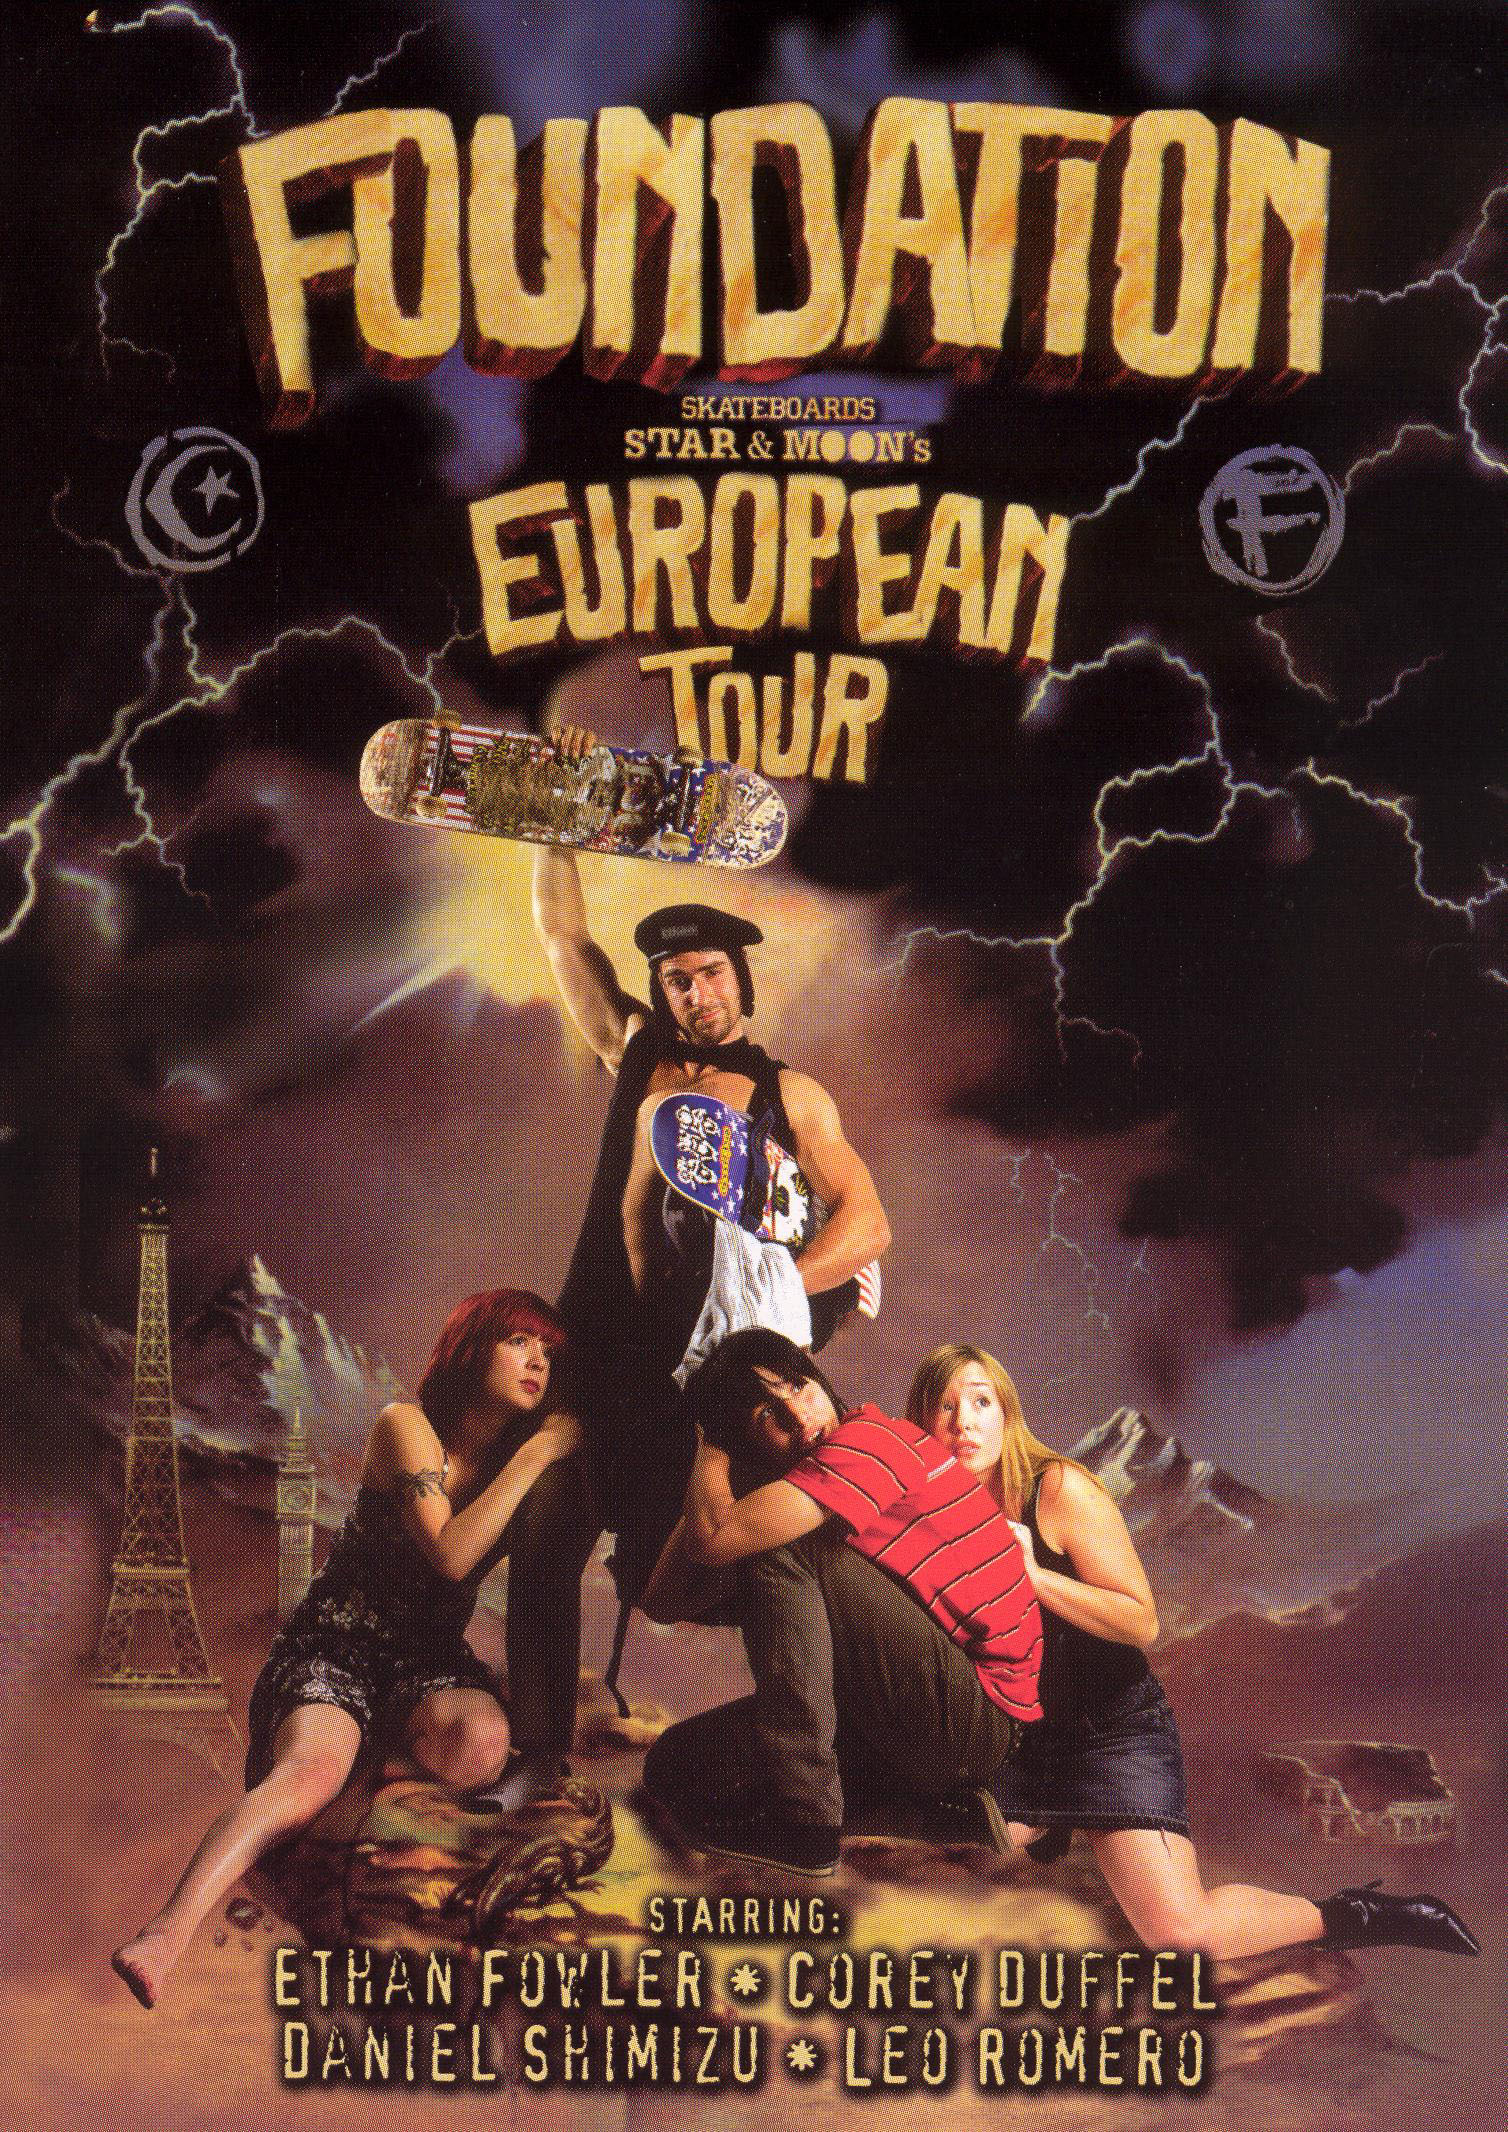 Foundation European Tour